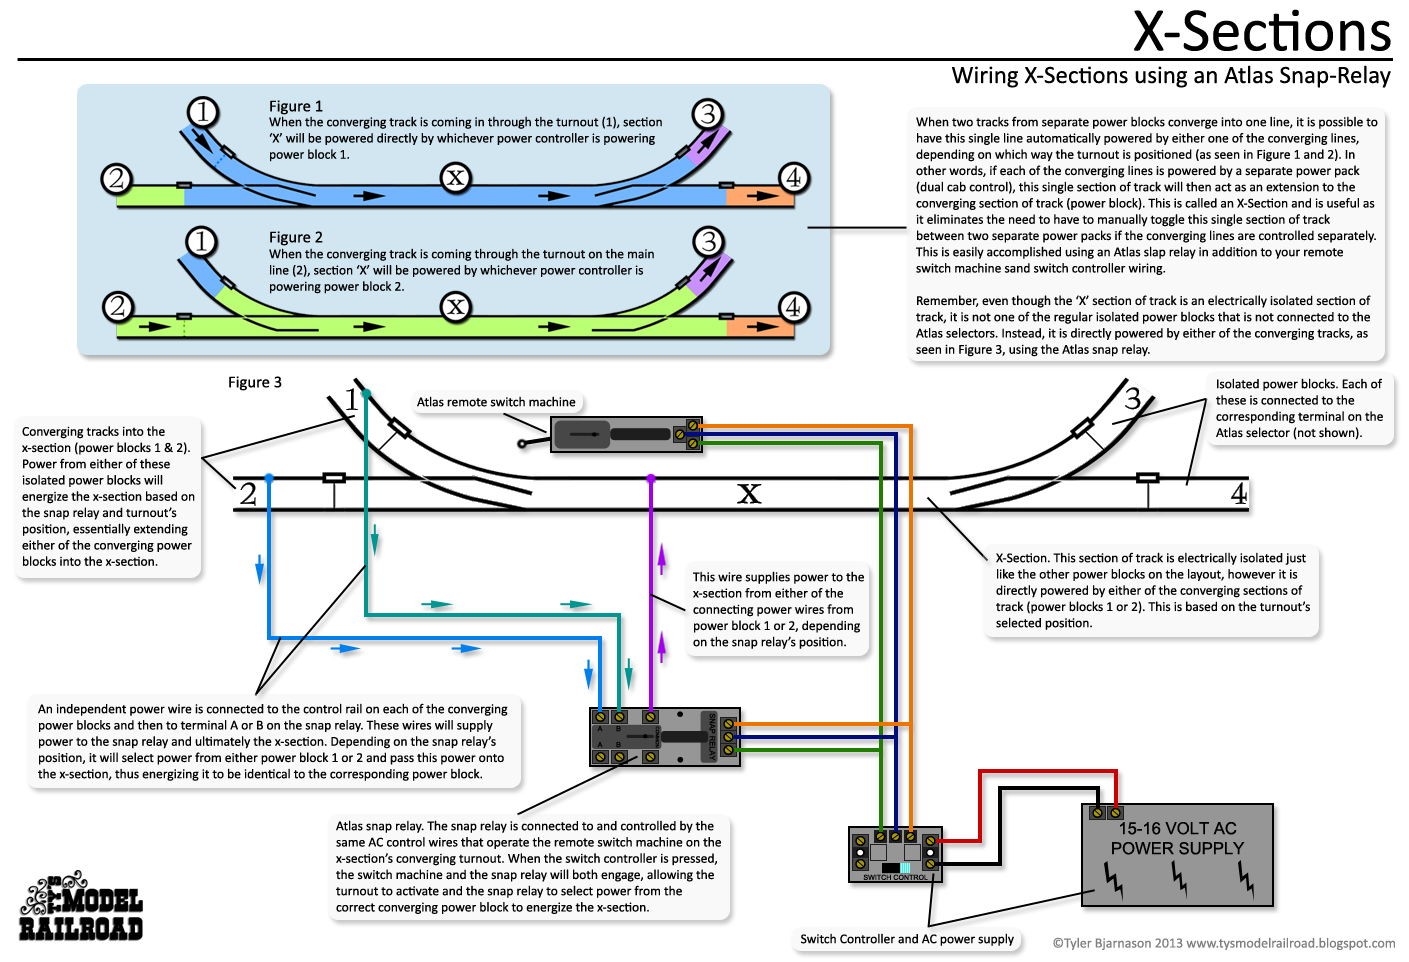 Ty's Model Railroad Wiring Diagrams - Wiring Diagram